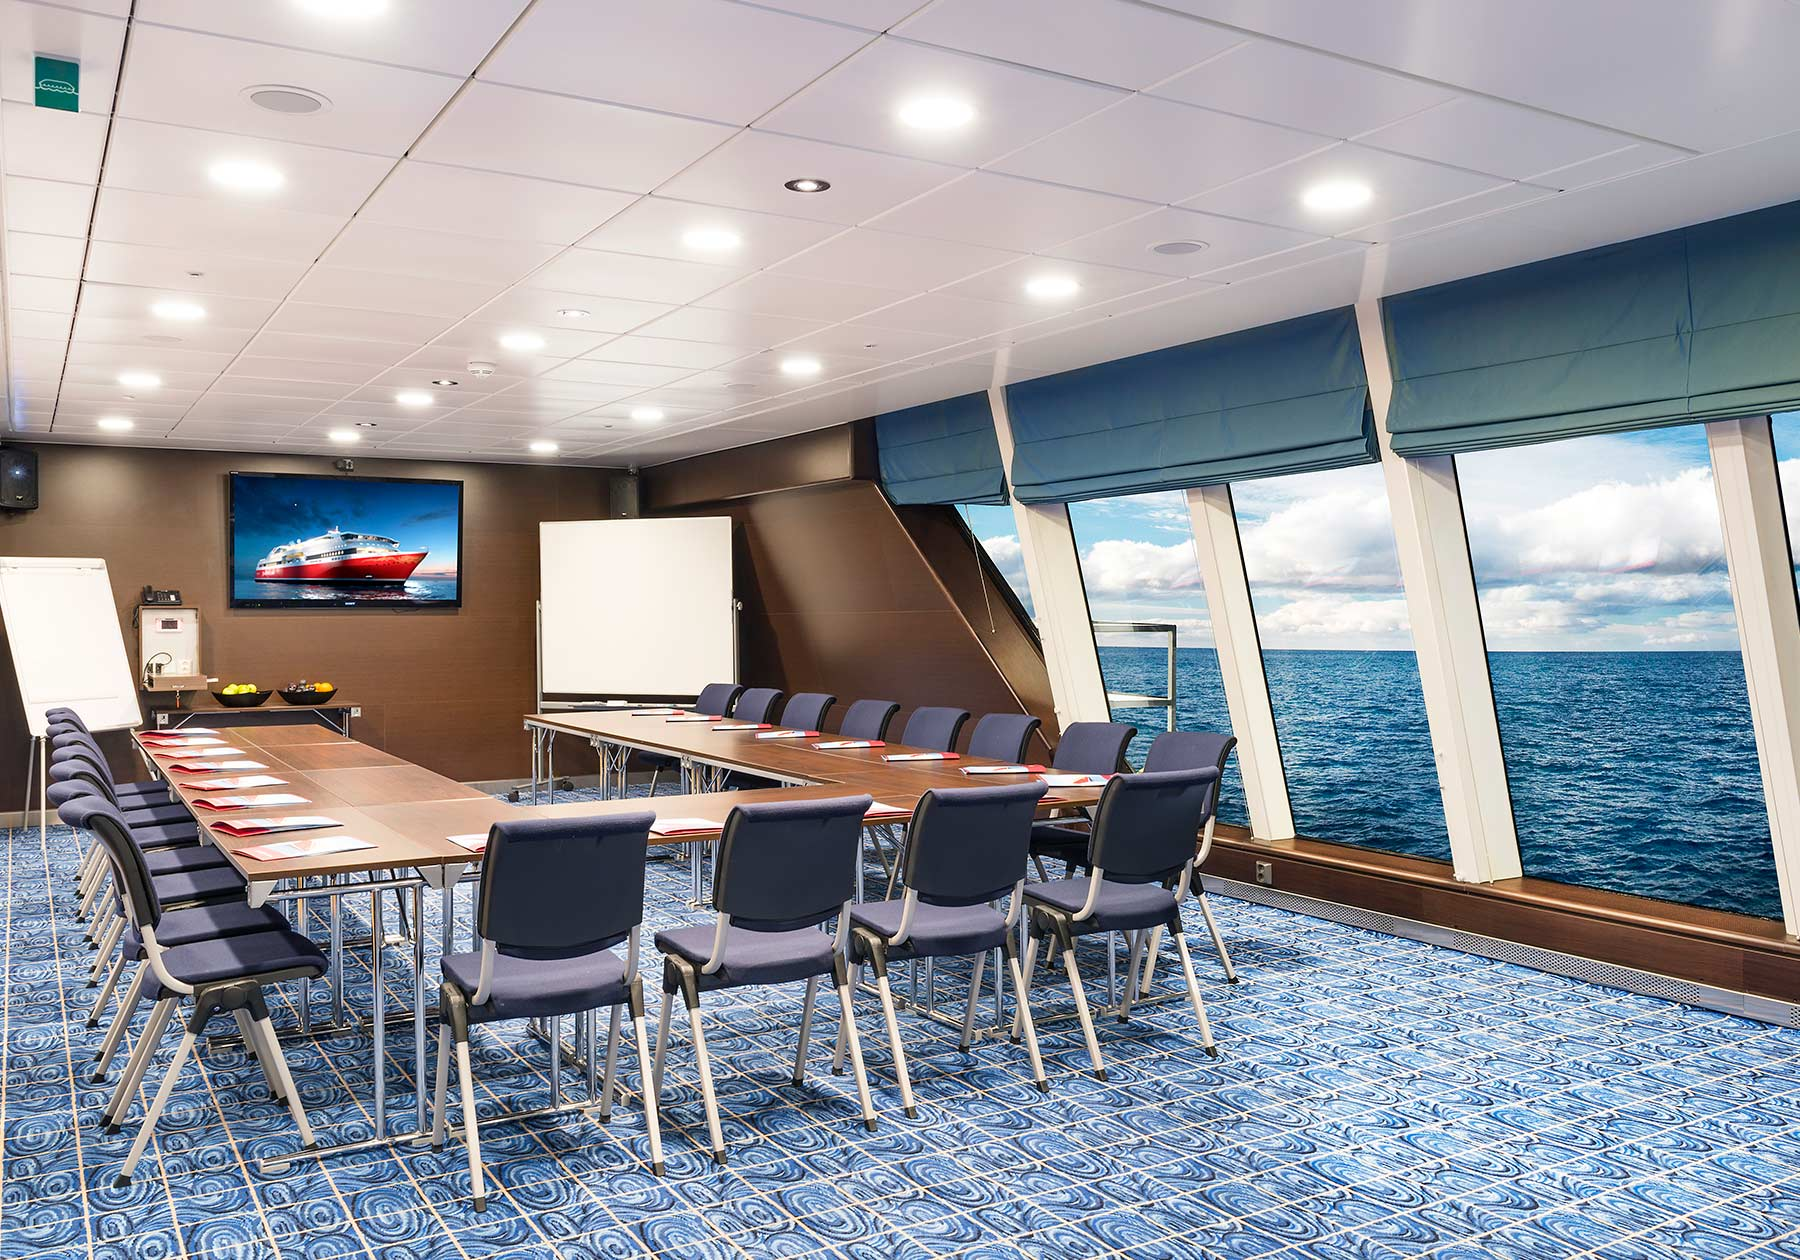 Horseshoe-shaped meeting rooms with modern facilities and sea views.